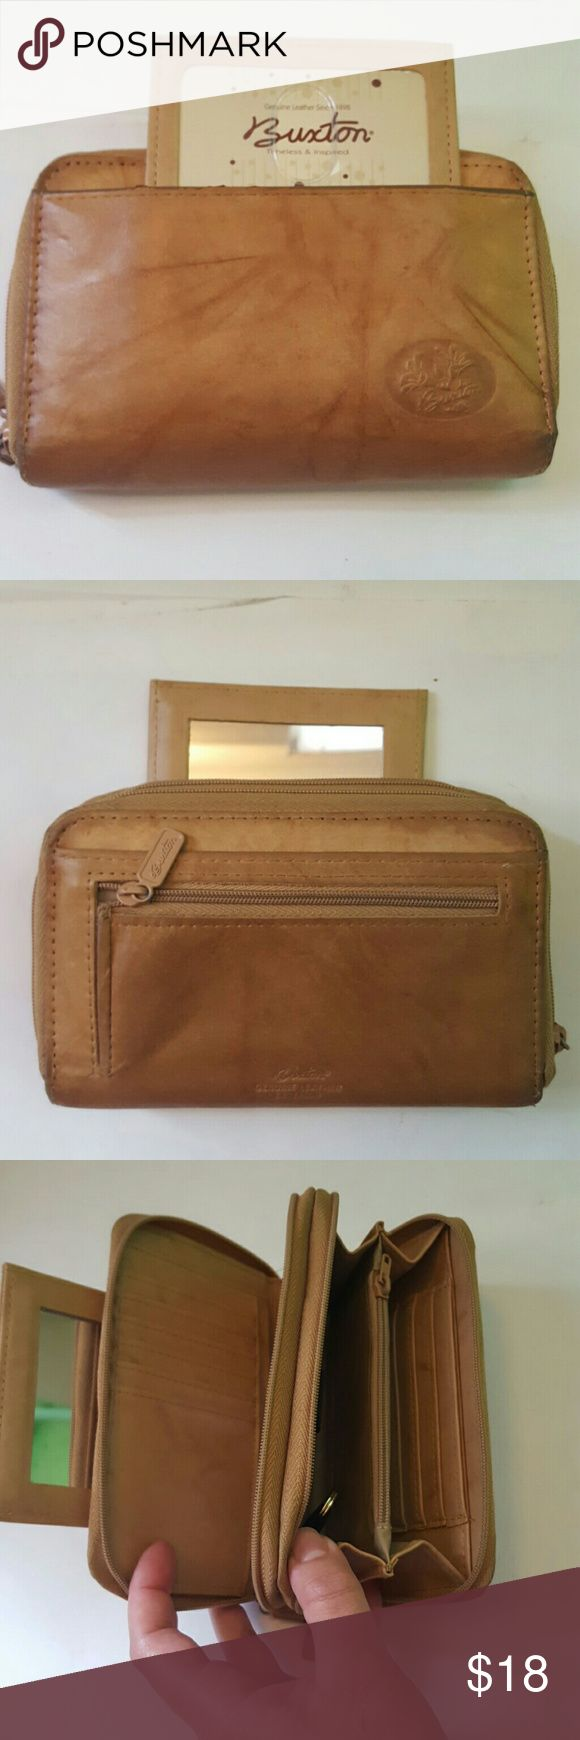 *Sale* Buxton wallet Condition 8/10,small scuffs on the bag, barely noticeable, it has many pockets, pen holder, key holder, mirror, genuine leather exterior, Height 4', Length 6', Width 1.5', if you want to request more pictures, don't hesitate to ask me. Thanks for your time. Buxton Bags Wallets